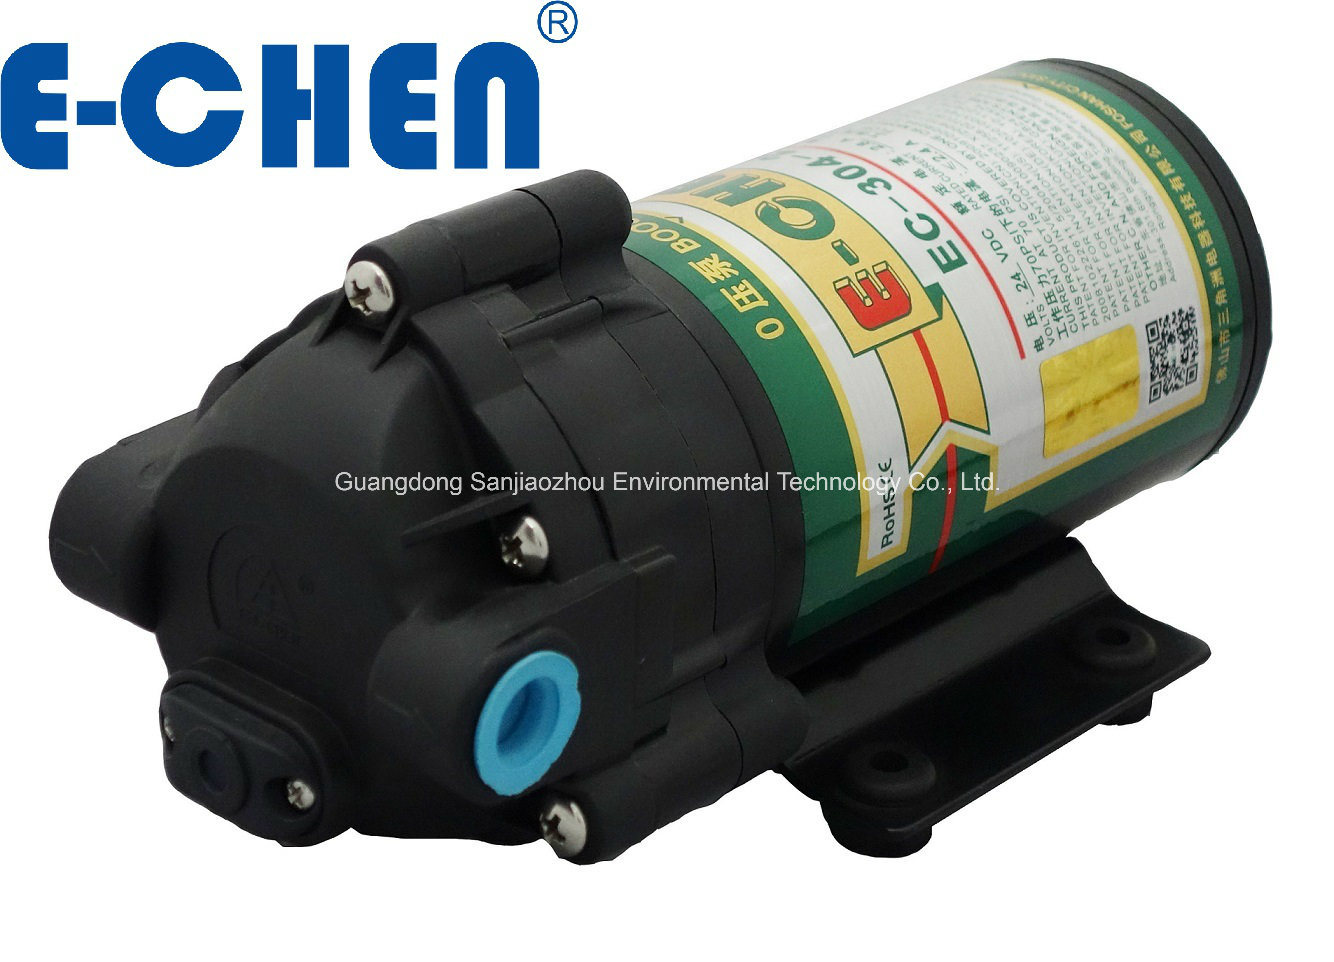 E-Chen 304 Series 400gpd Diaphragm RO Booster Pump - Designed for 0 Inlet Pressure Water Pump